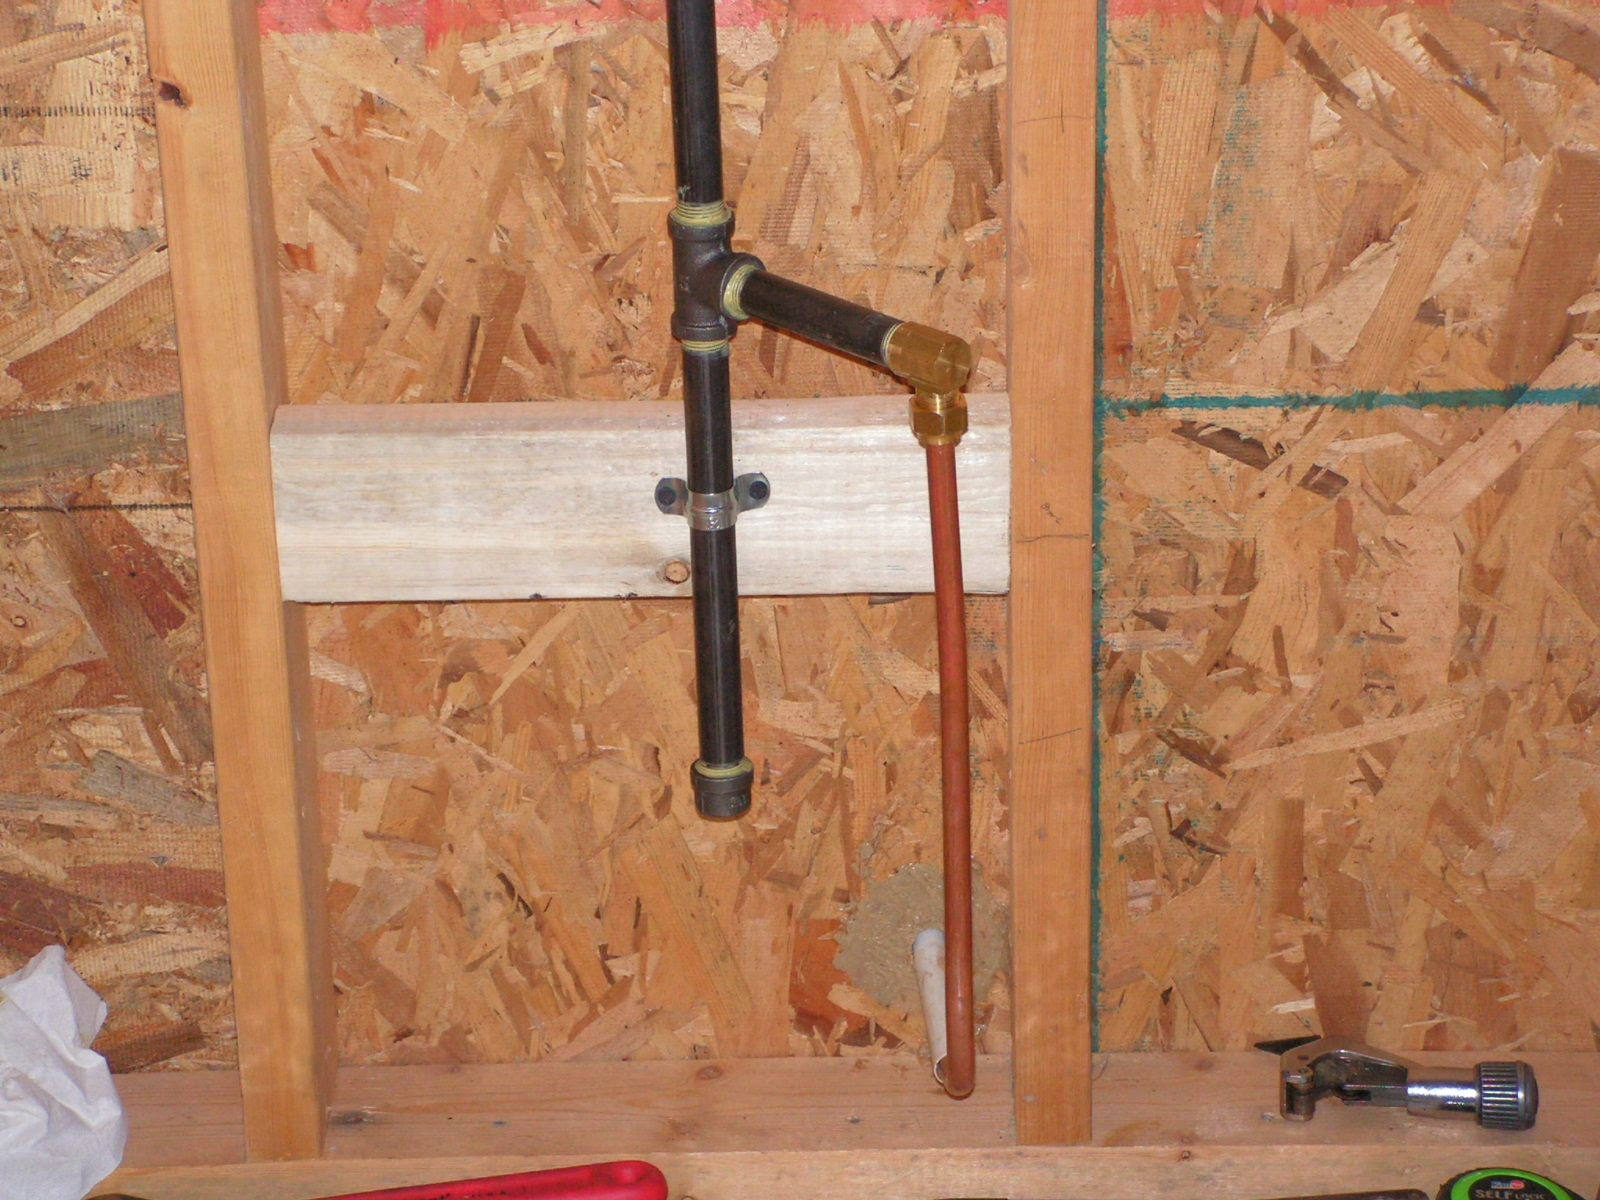 heater videos diy heaters a gas water enclosure for garage video build